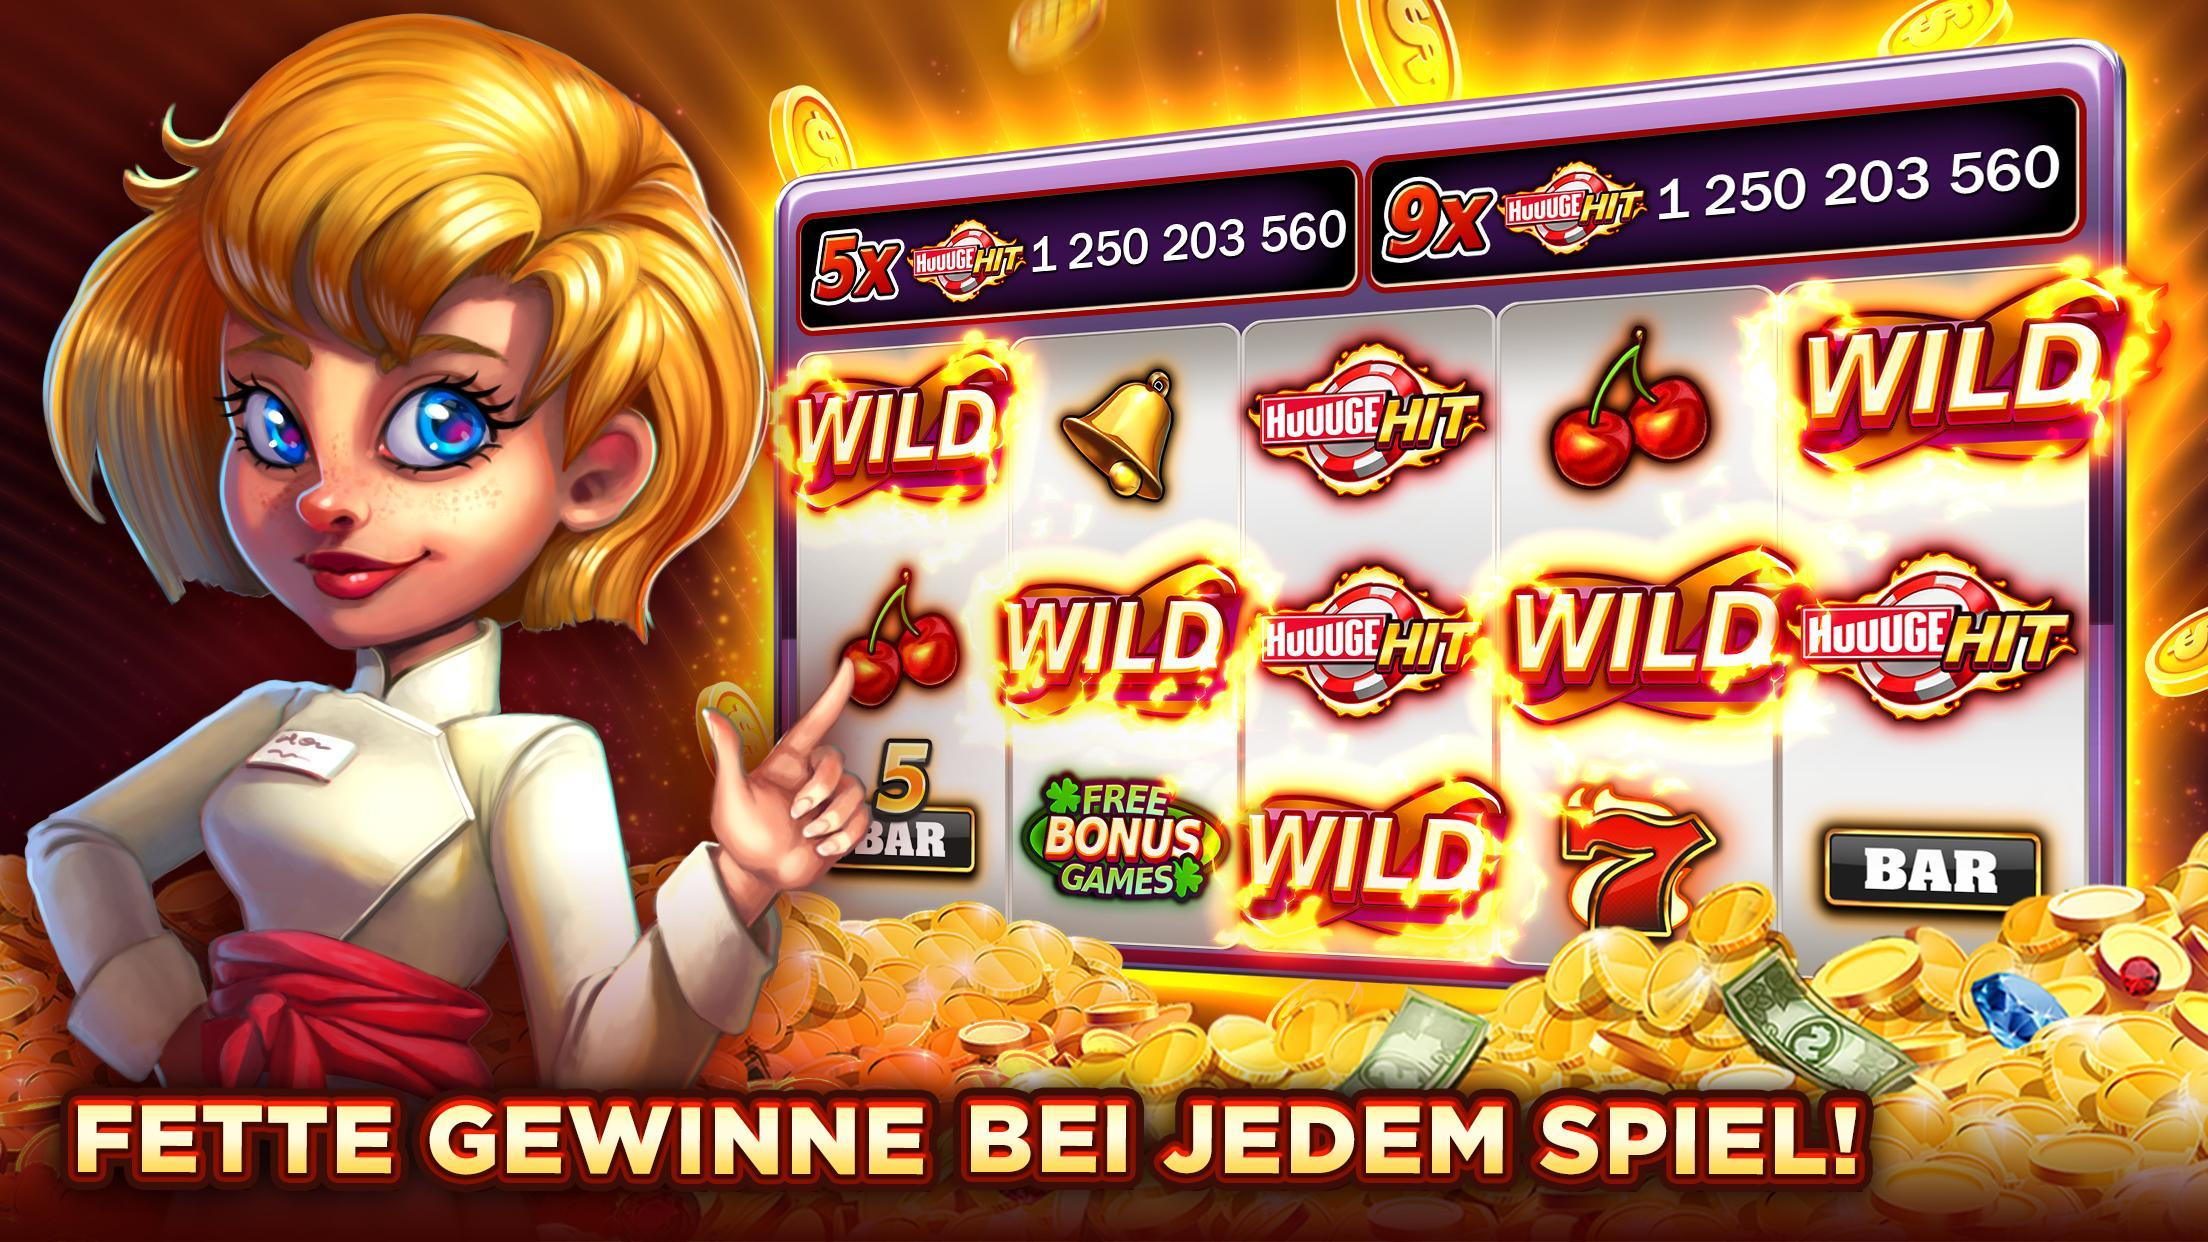 Rainbow riches casino trustpilot